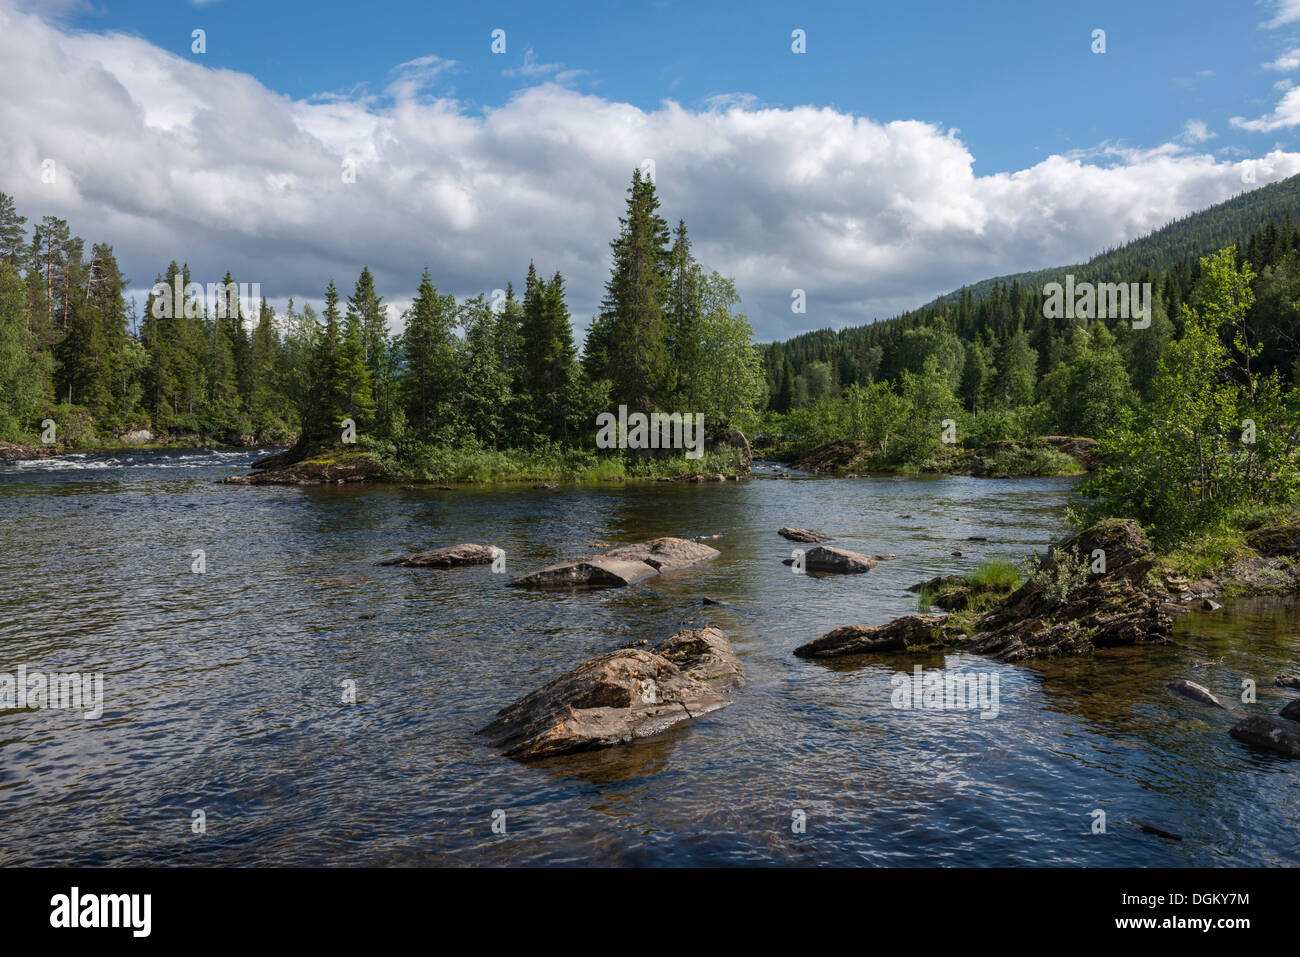 Landscape with the salmon river of Namsen, Namsskogan, Tal Namdalen, Nord-Trøndelag, Trøndelag, Norway - Stock Image